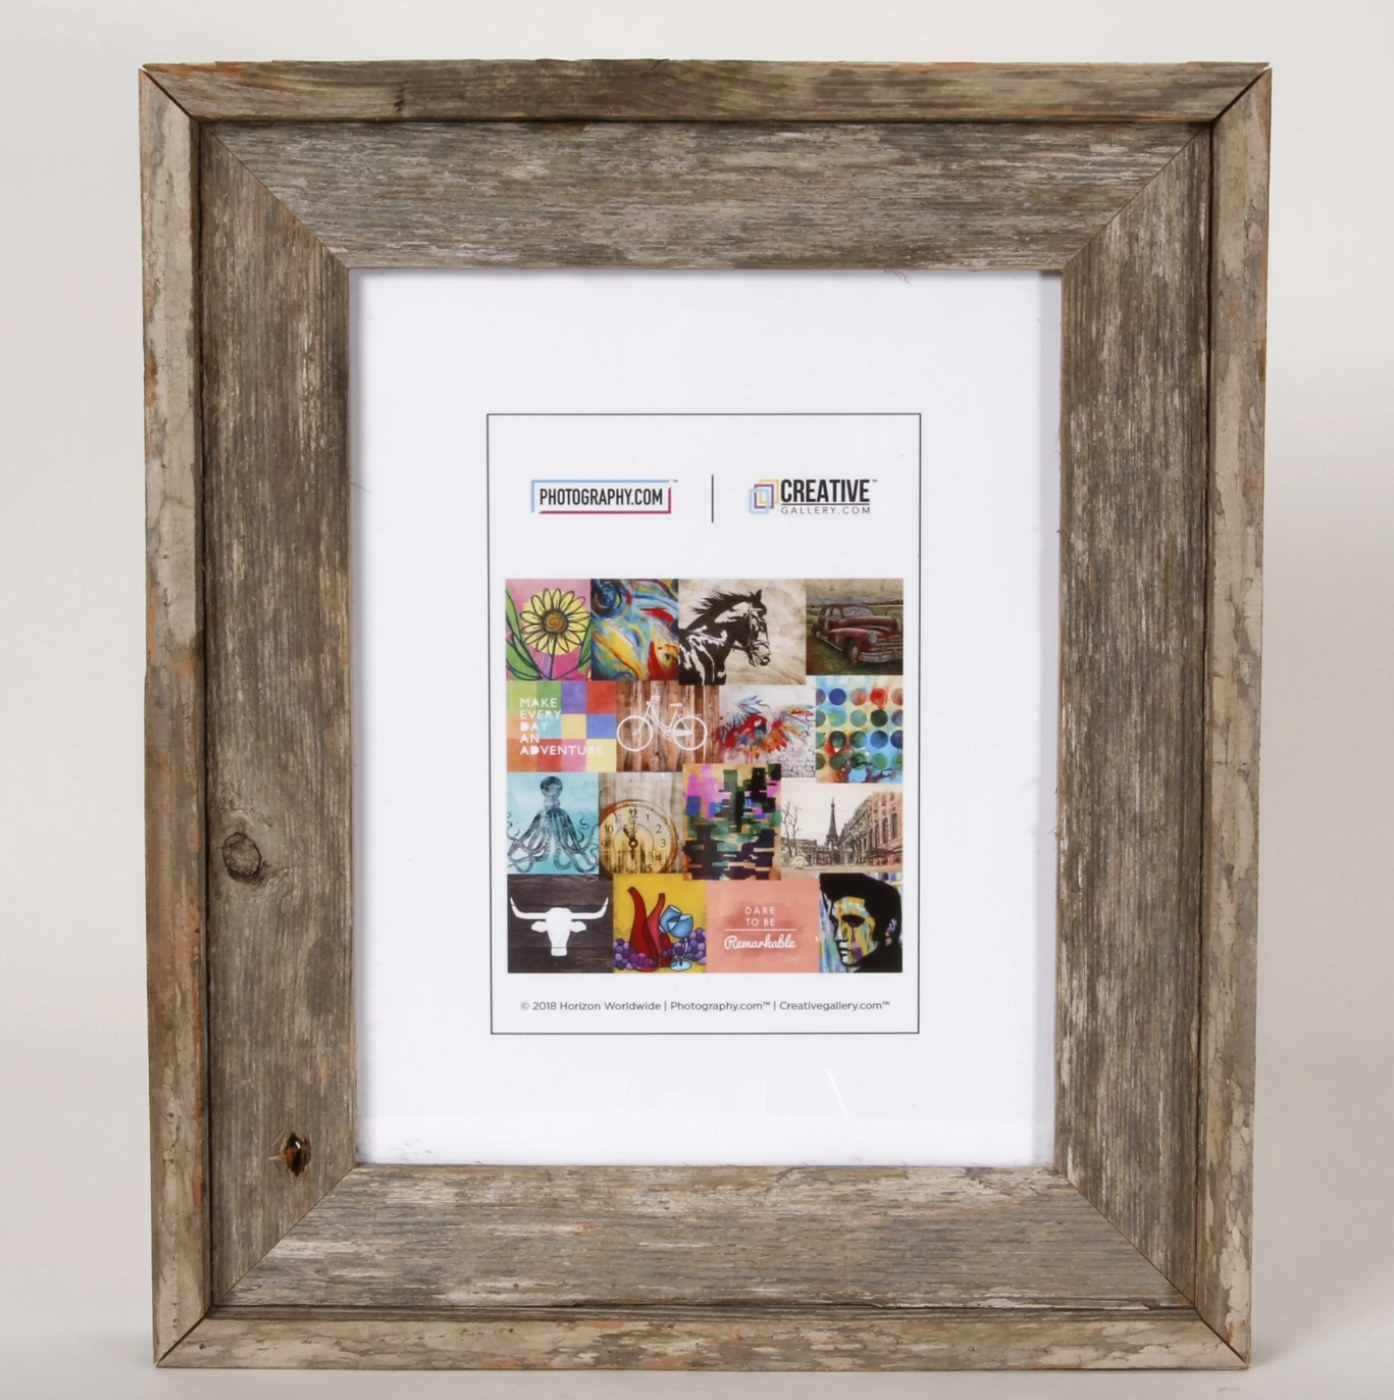 The wooden picture frame